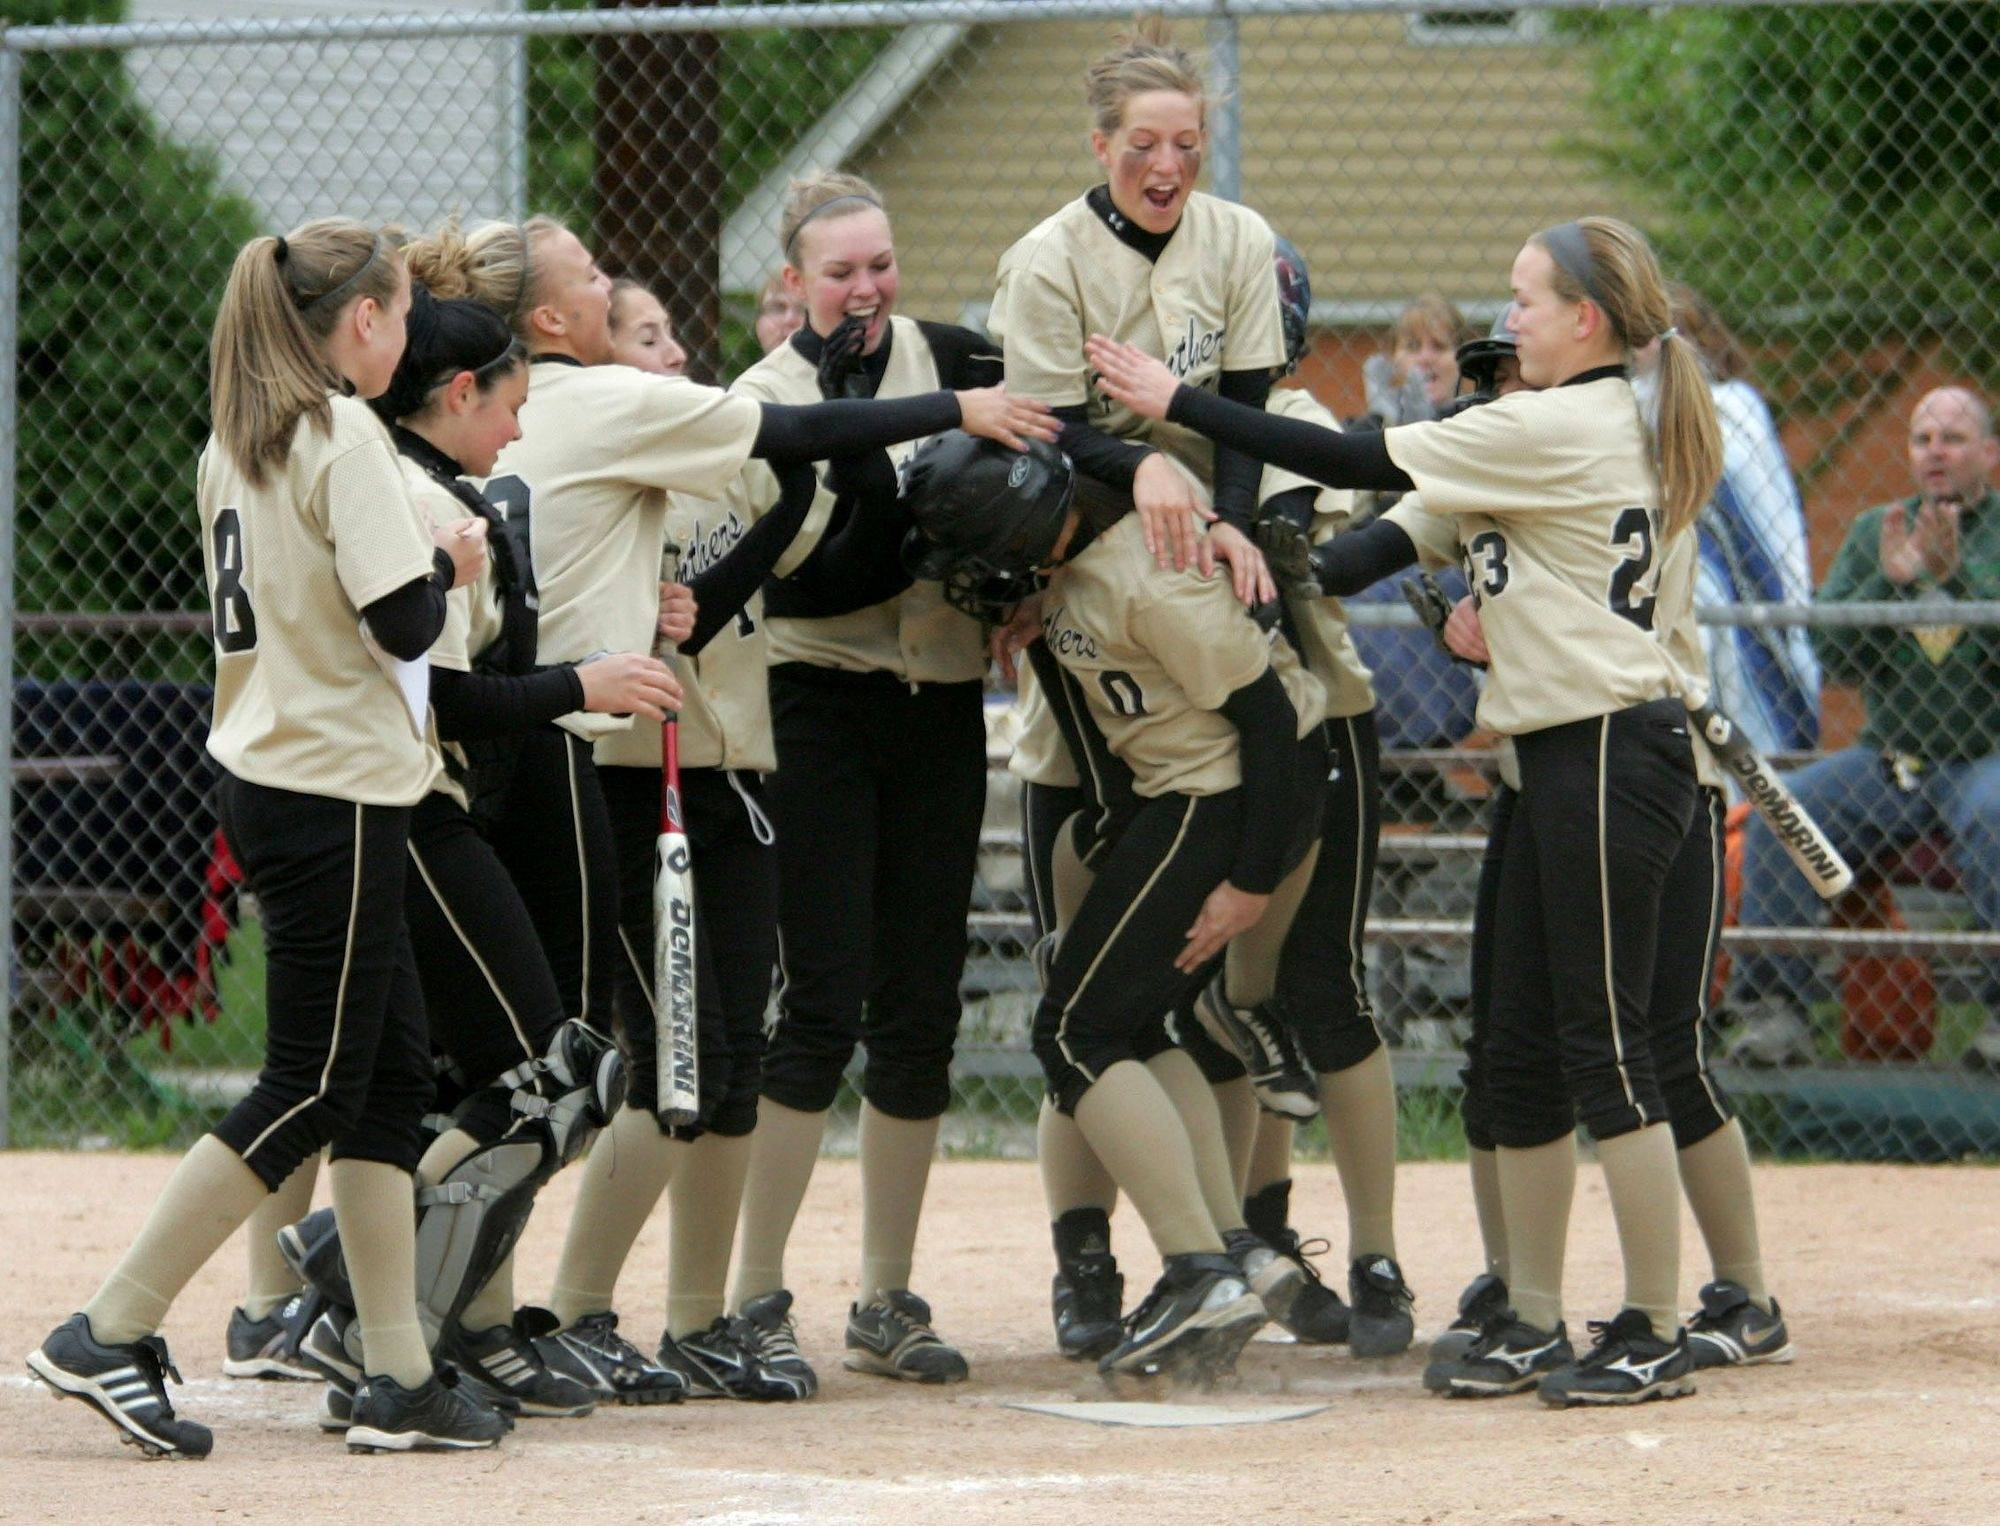 Glenbard North teammates greet Jenny Nelson, center, after she hit a 2-run homer in the fifth inning against West Chicago during softball on Monday.